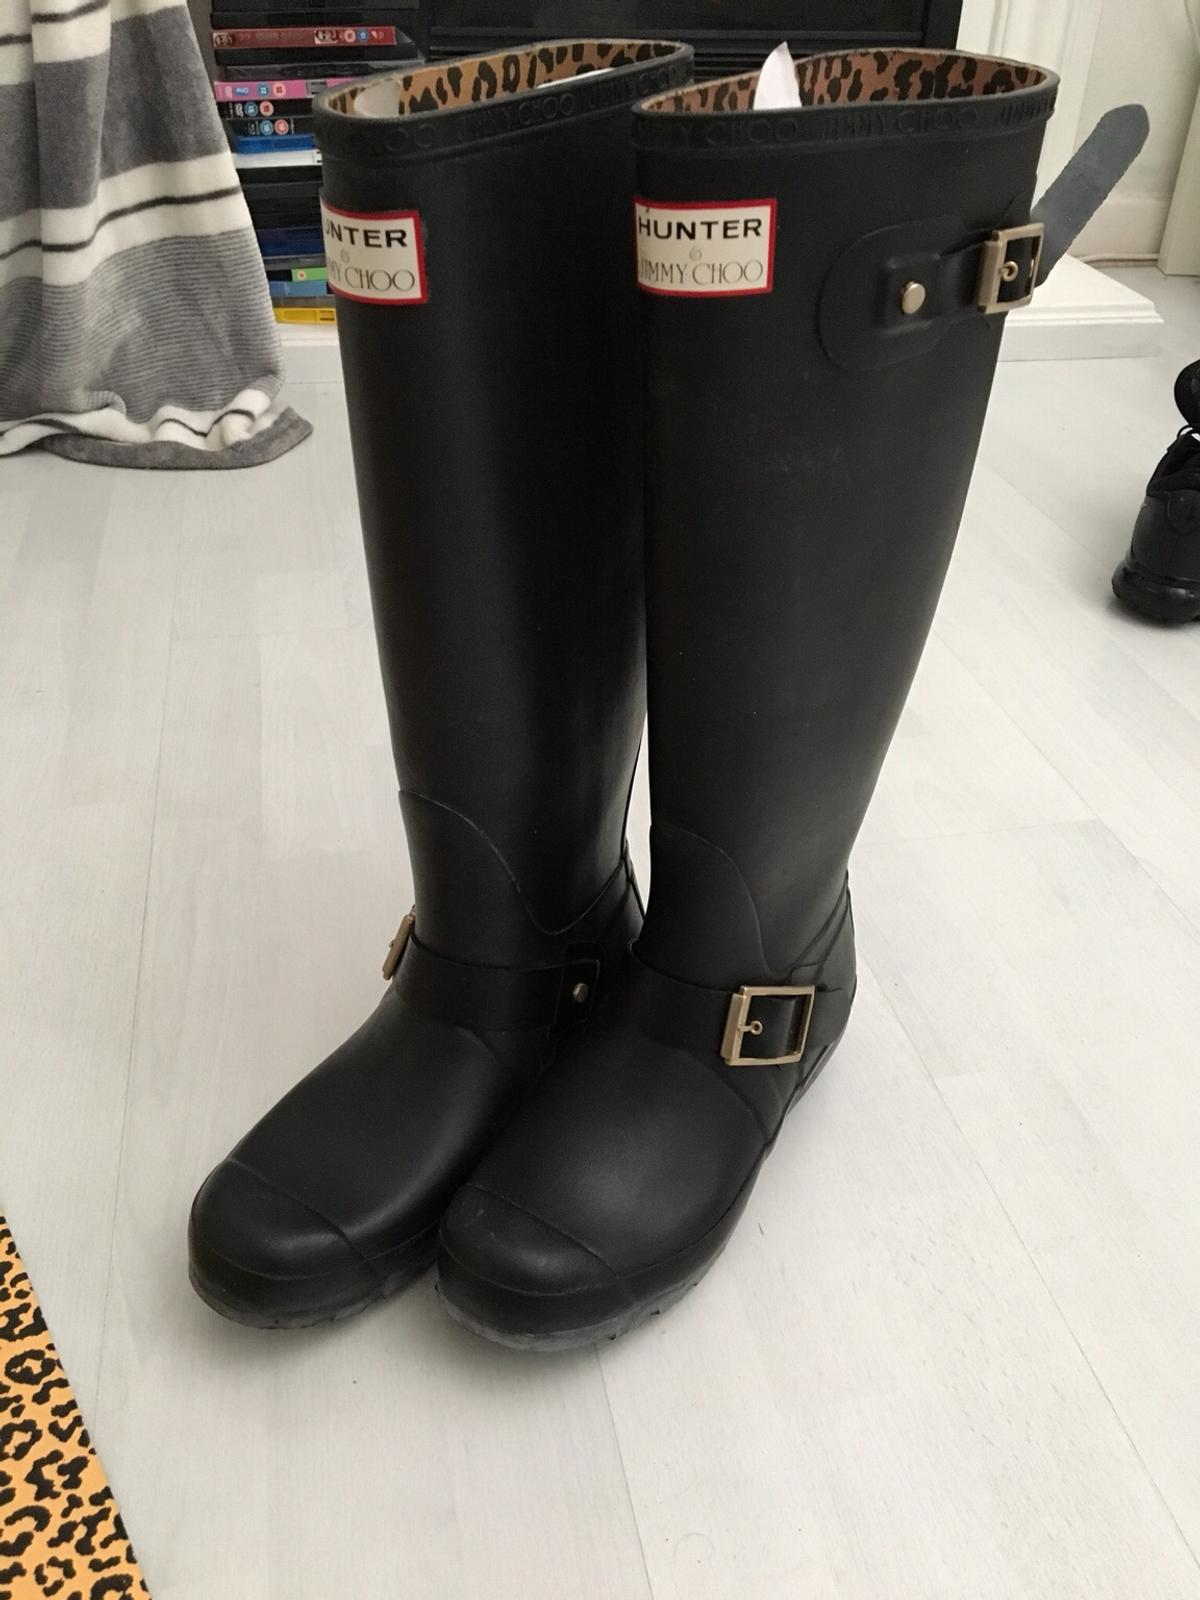 86c2439a995 Jimmy choo x Hunter wellies boots size 6 in B29 Birmingham for ...